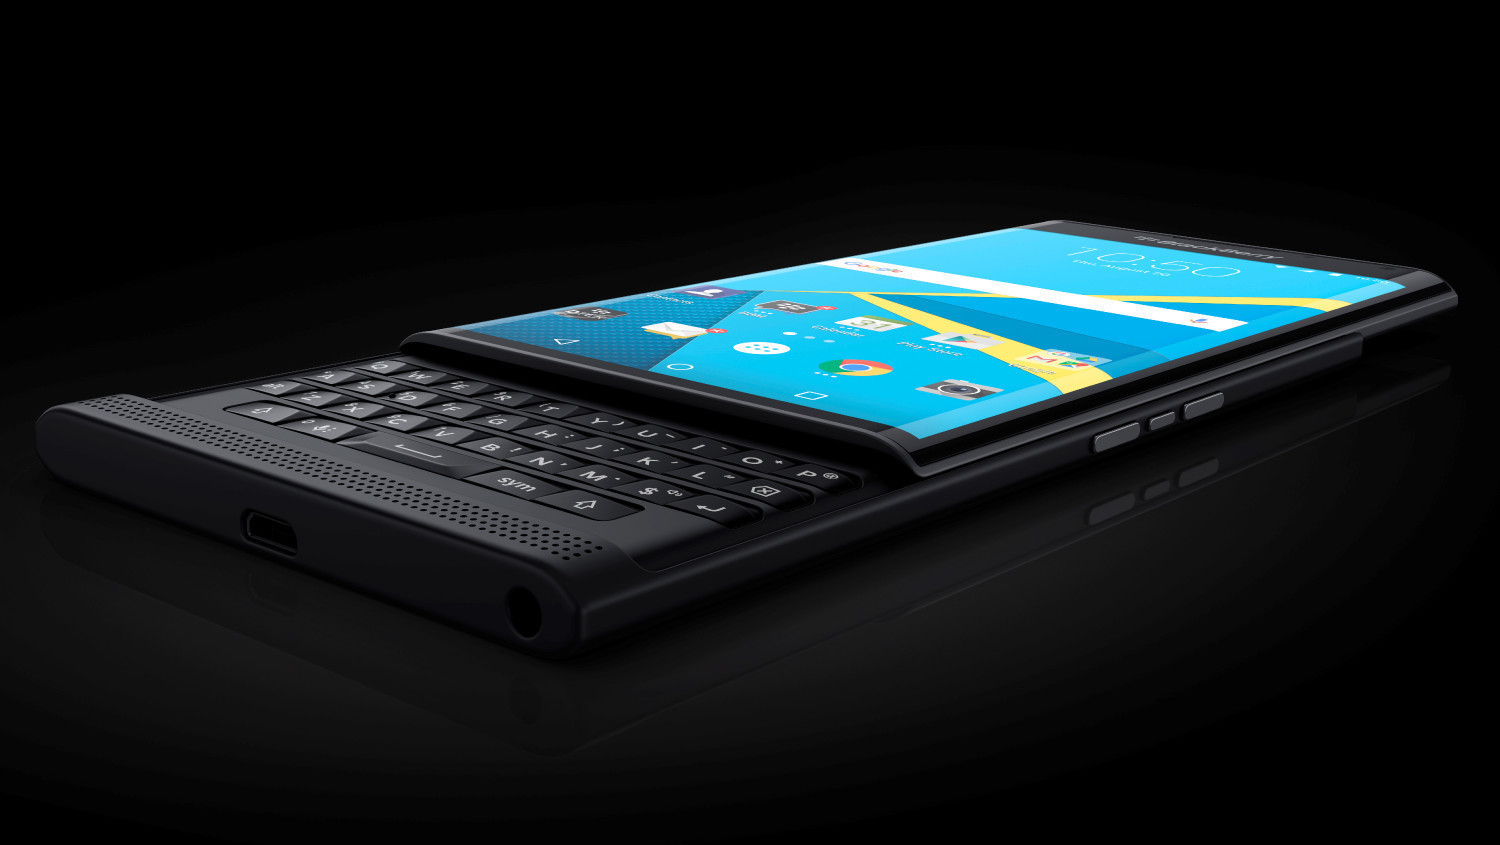 BlackBerry Priv isn't being upgraded to Android Nougat